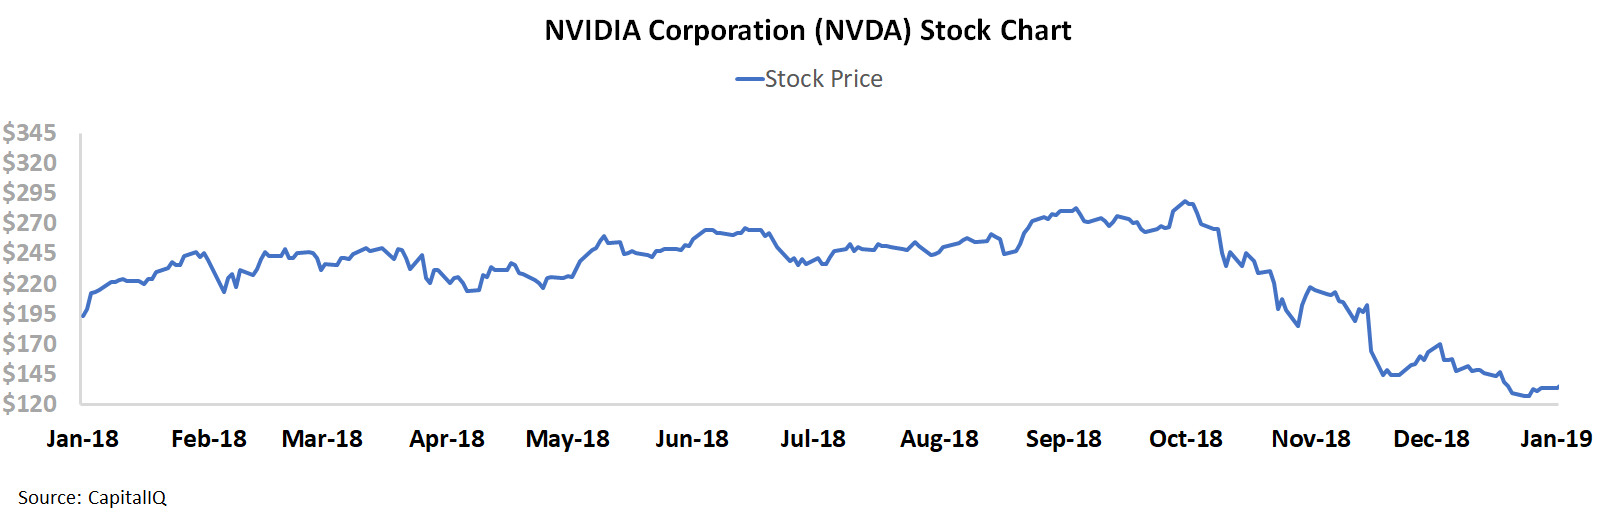 investing in gpu stocks because of cryptocurrency